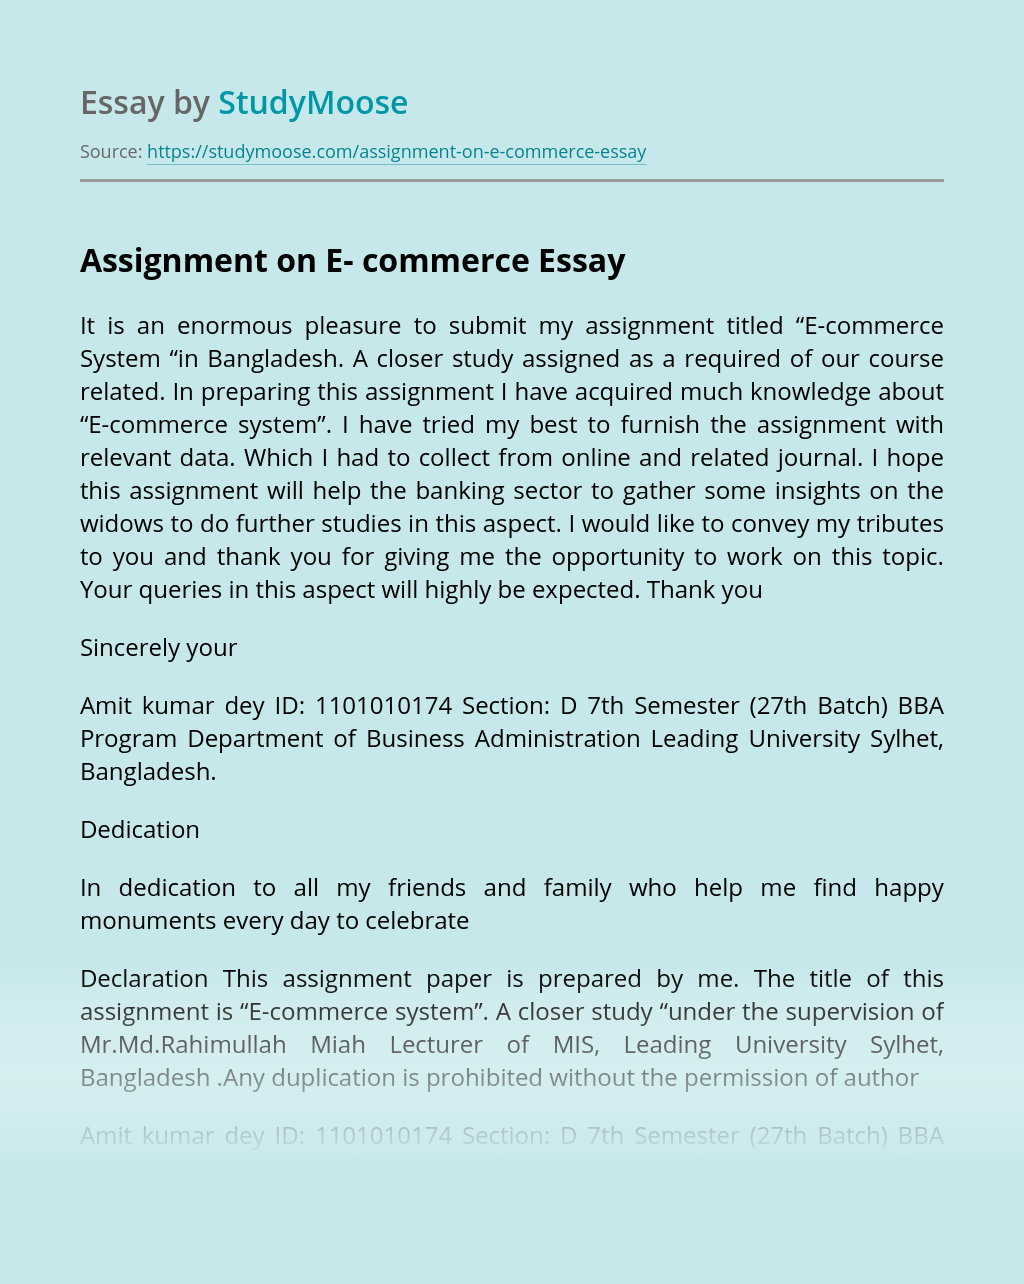 Assignment on E- commerce